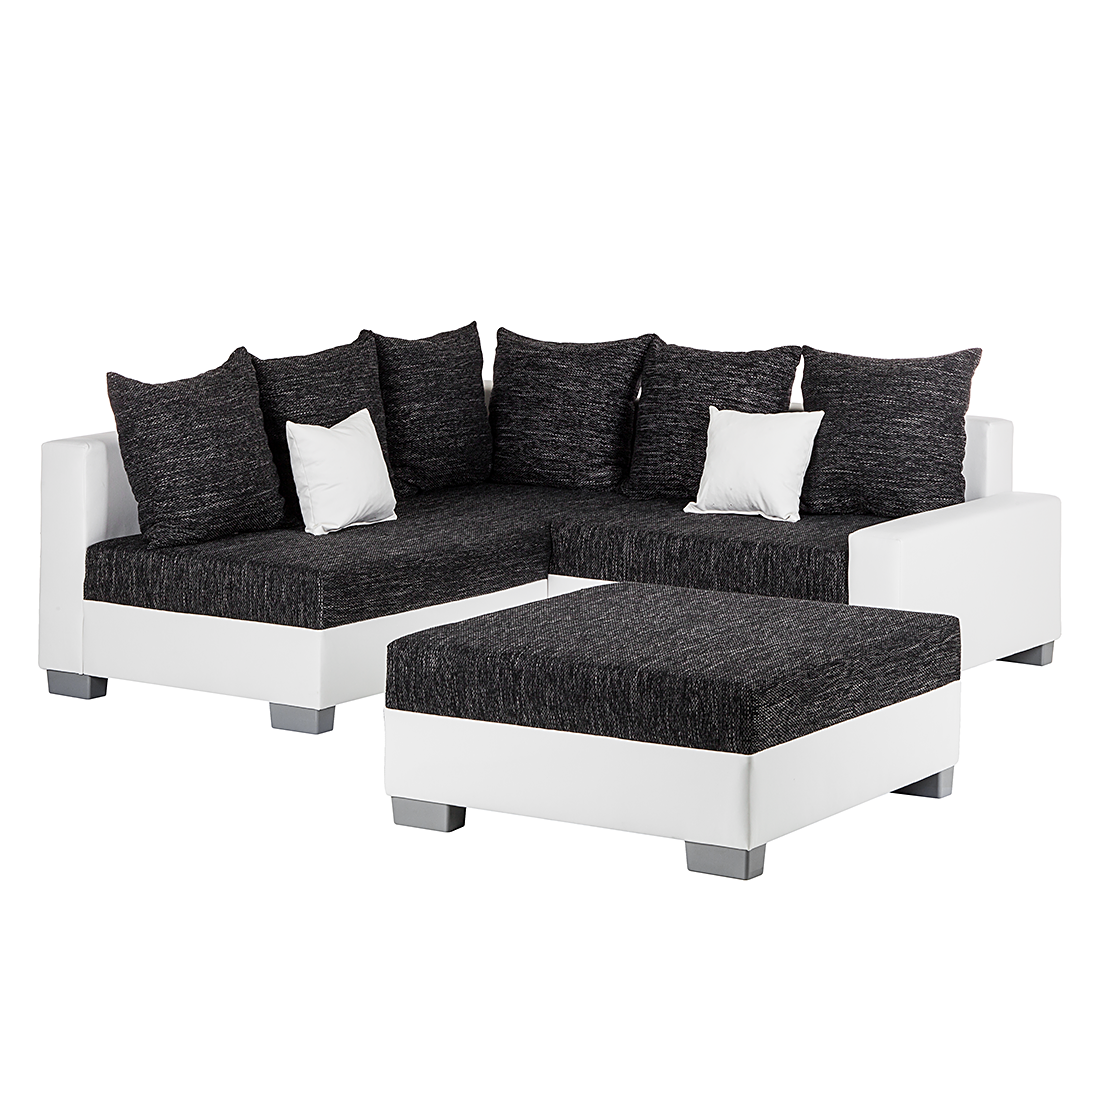 ecksofa mit hocker schwarz wei ottomane links eckcouch. Black Bedroom Furniture Sets. Home Design Ideas